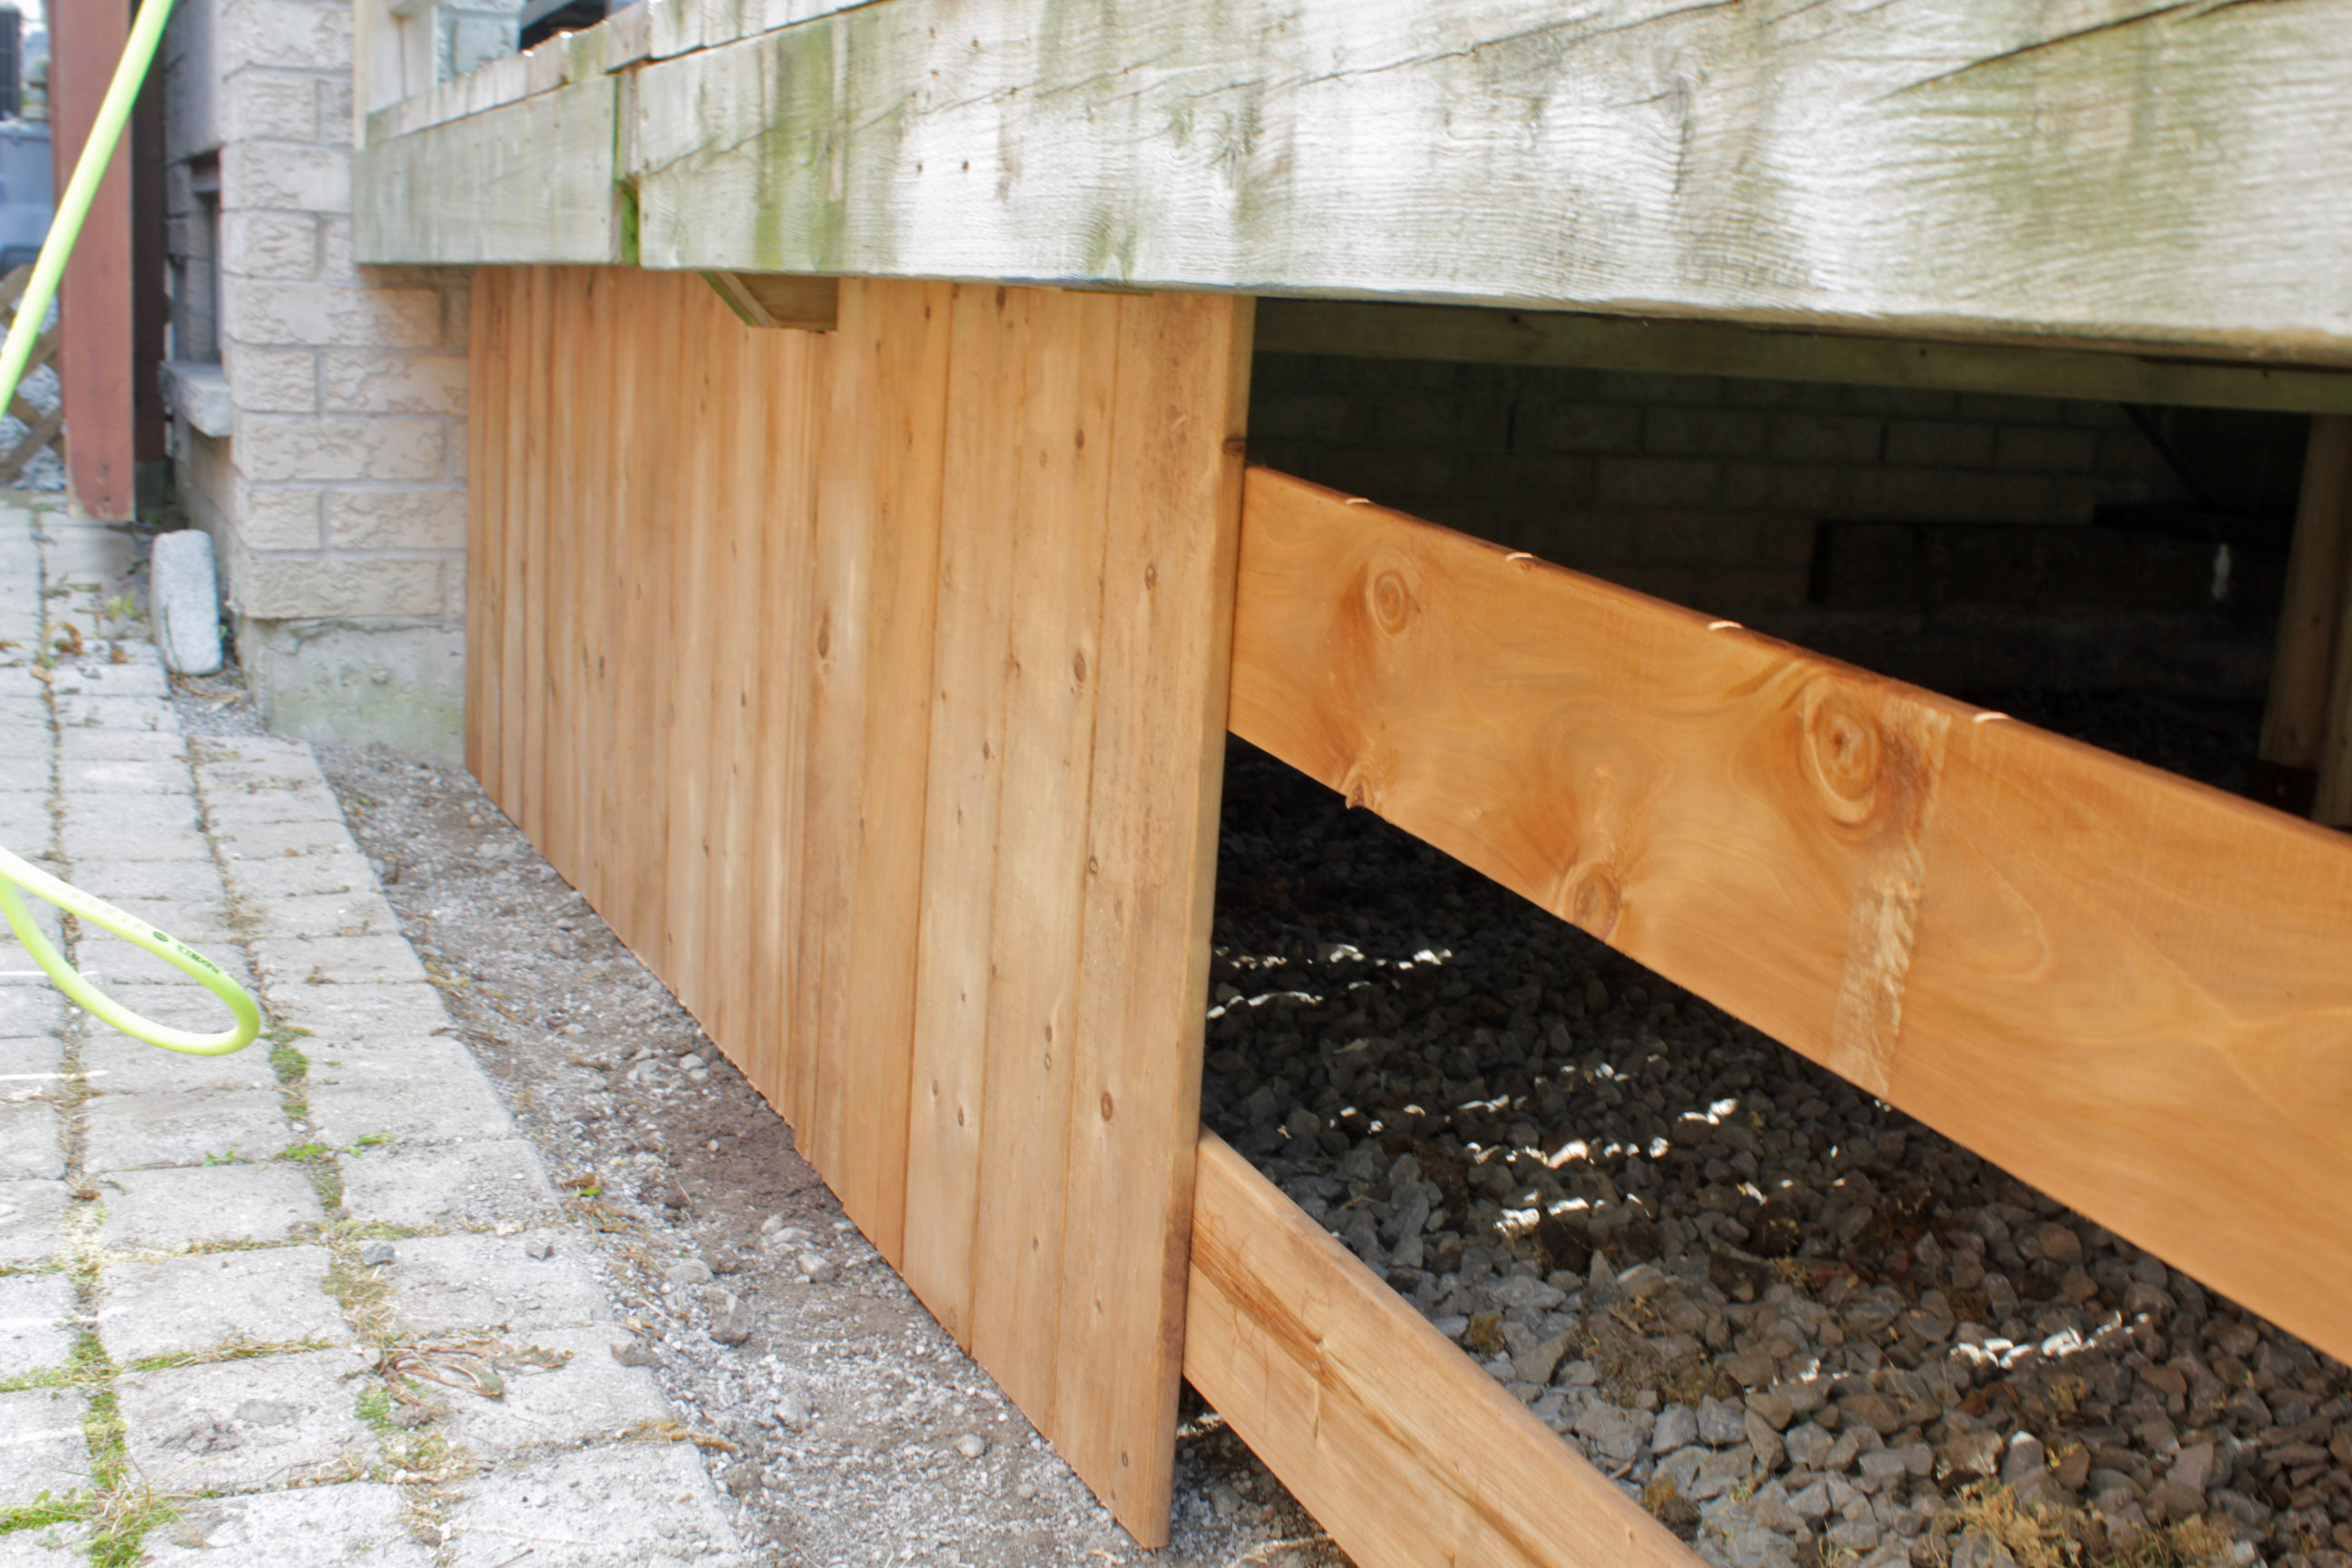 Turtles And Tails Under Deck Enclosure With Access Door